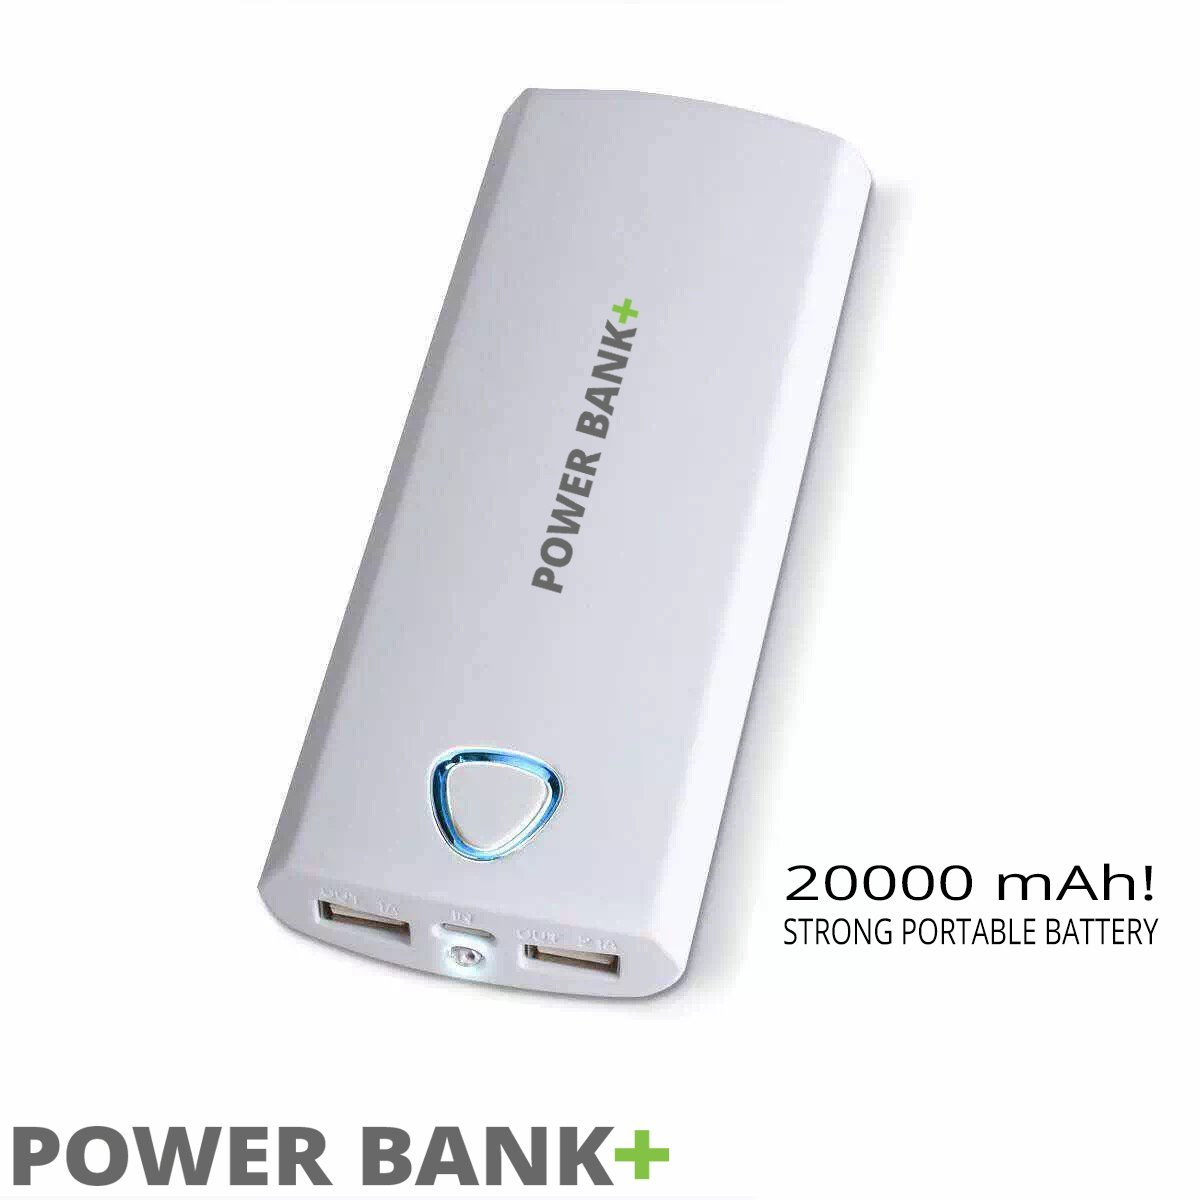 Powerbank 20000mah Portable Charger Vivi External Battery With 24 Fan 2 In 1 Home Shop Smart Phone Accessories 24a Dual Usb Outputs White